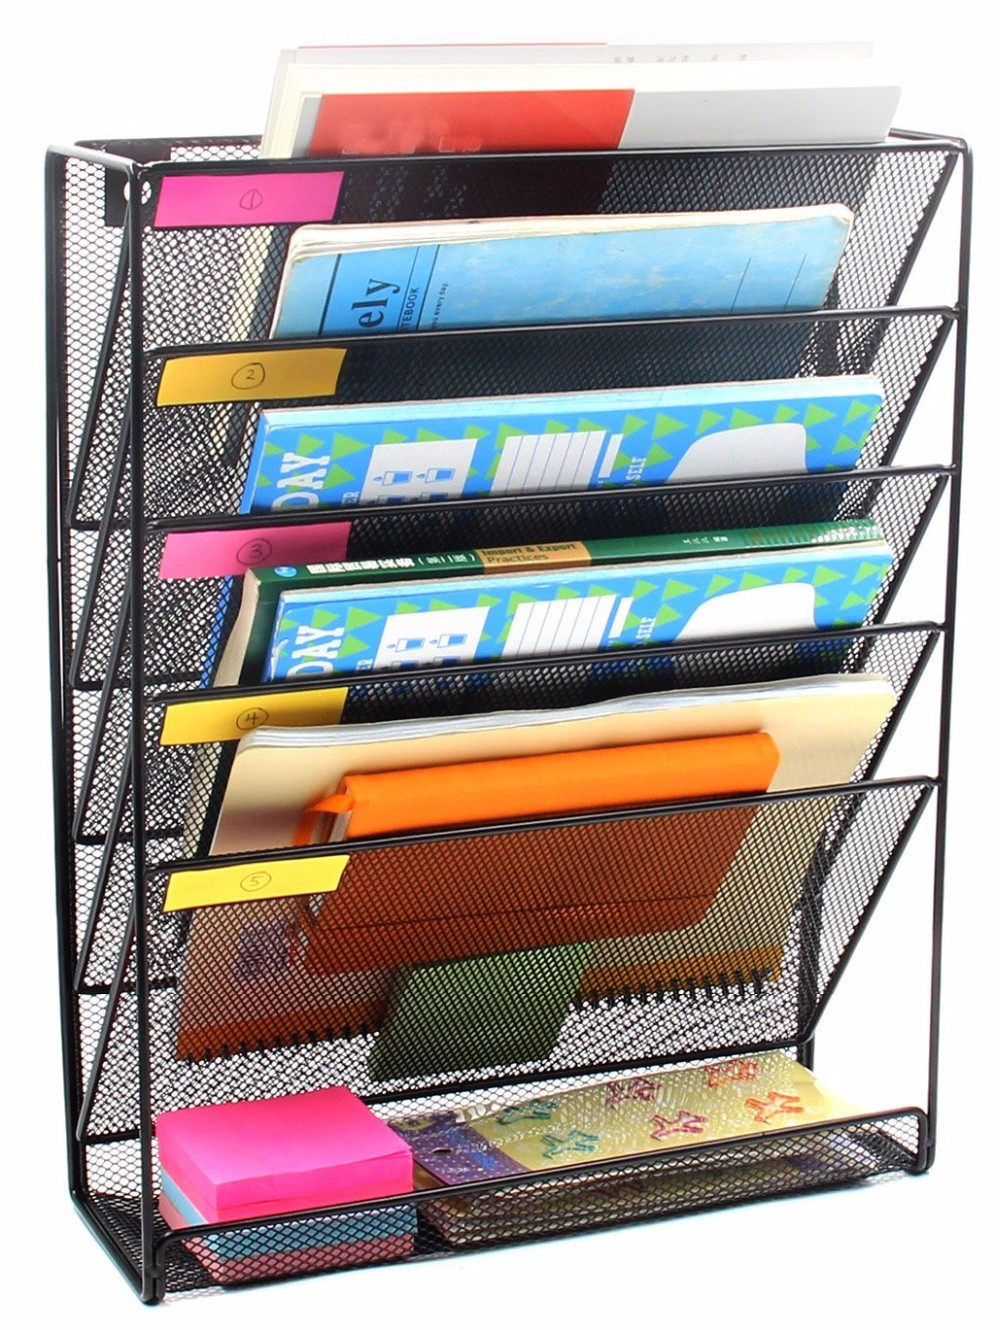 High quality customized decorative office desktop metal mesh magazine organizer wall file holder